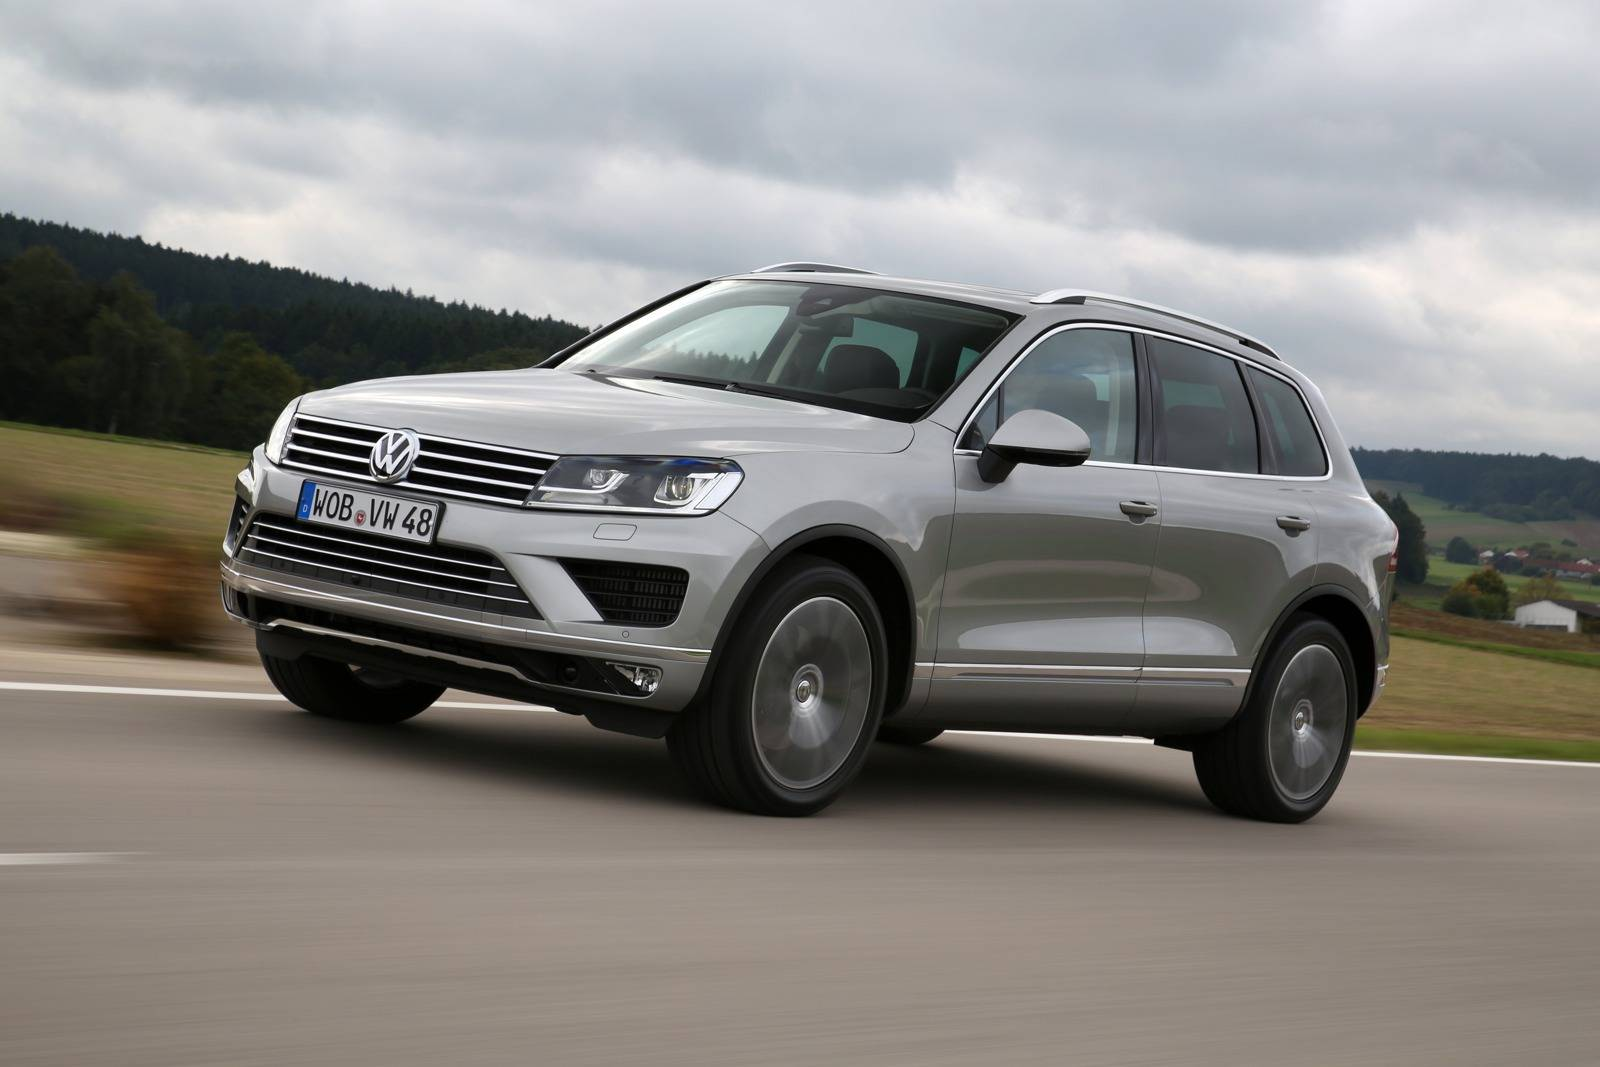 2015 volkswagen touareg facelift review. Black Bedroom Furniture Sets. Home Design Ideas